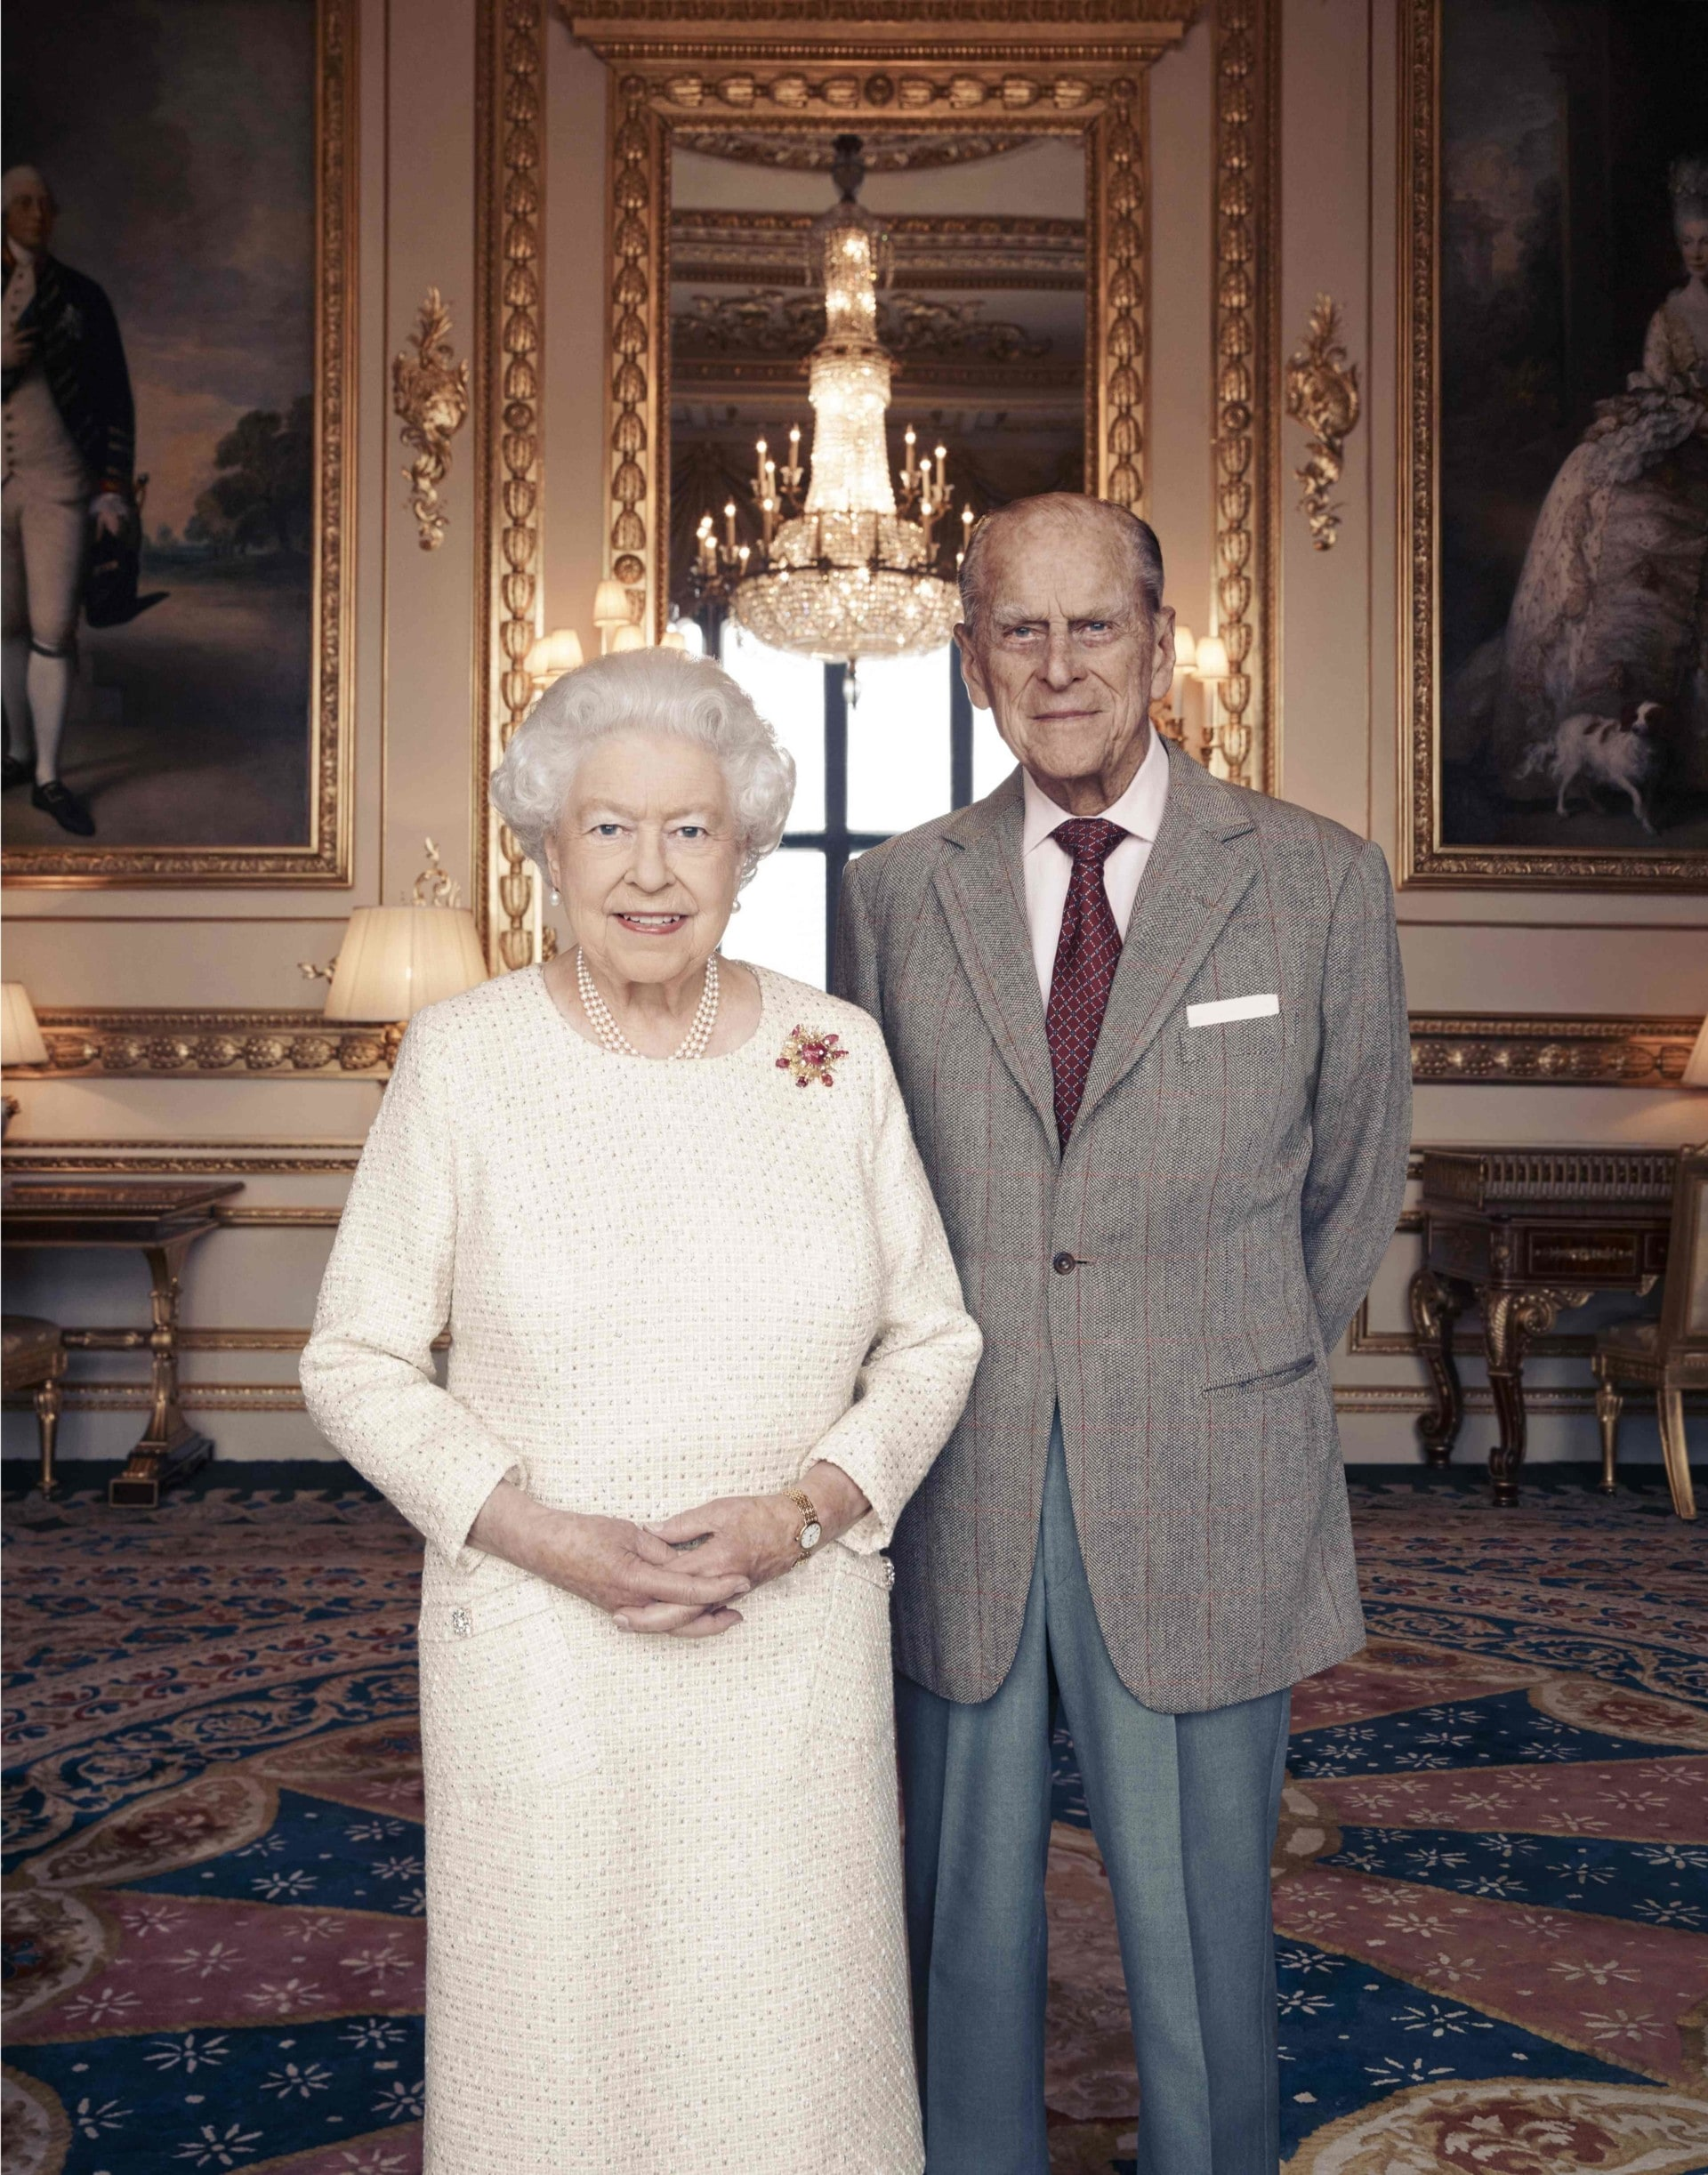 The Queen and Prince Philip: their love through images